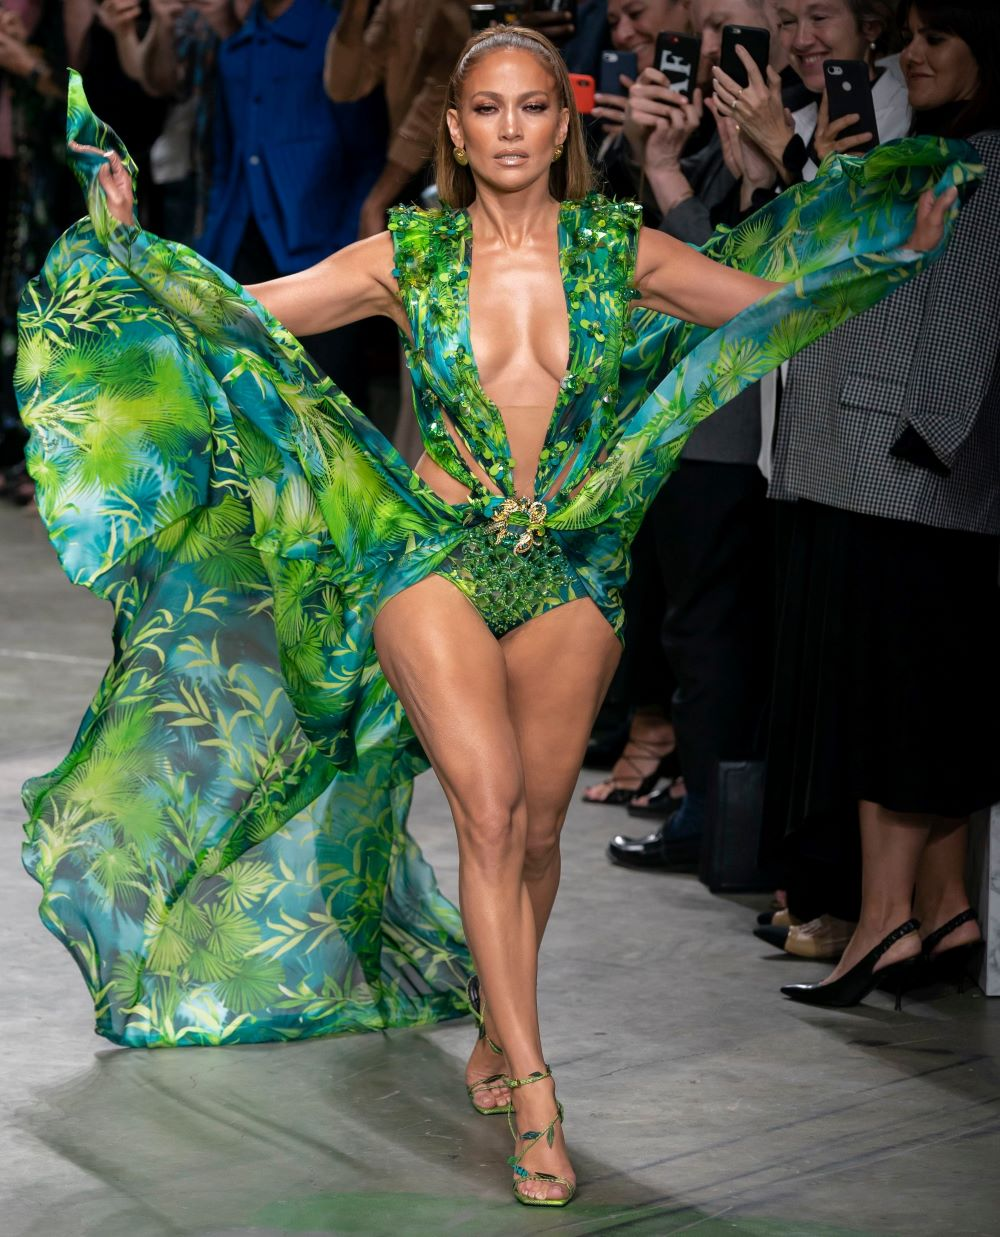 Versace sued Fashion Nova for copyright infringement, citing numerous lookalike products including Jennifer Lopez's infamous green dress.